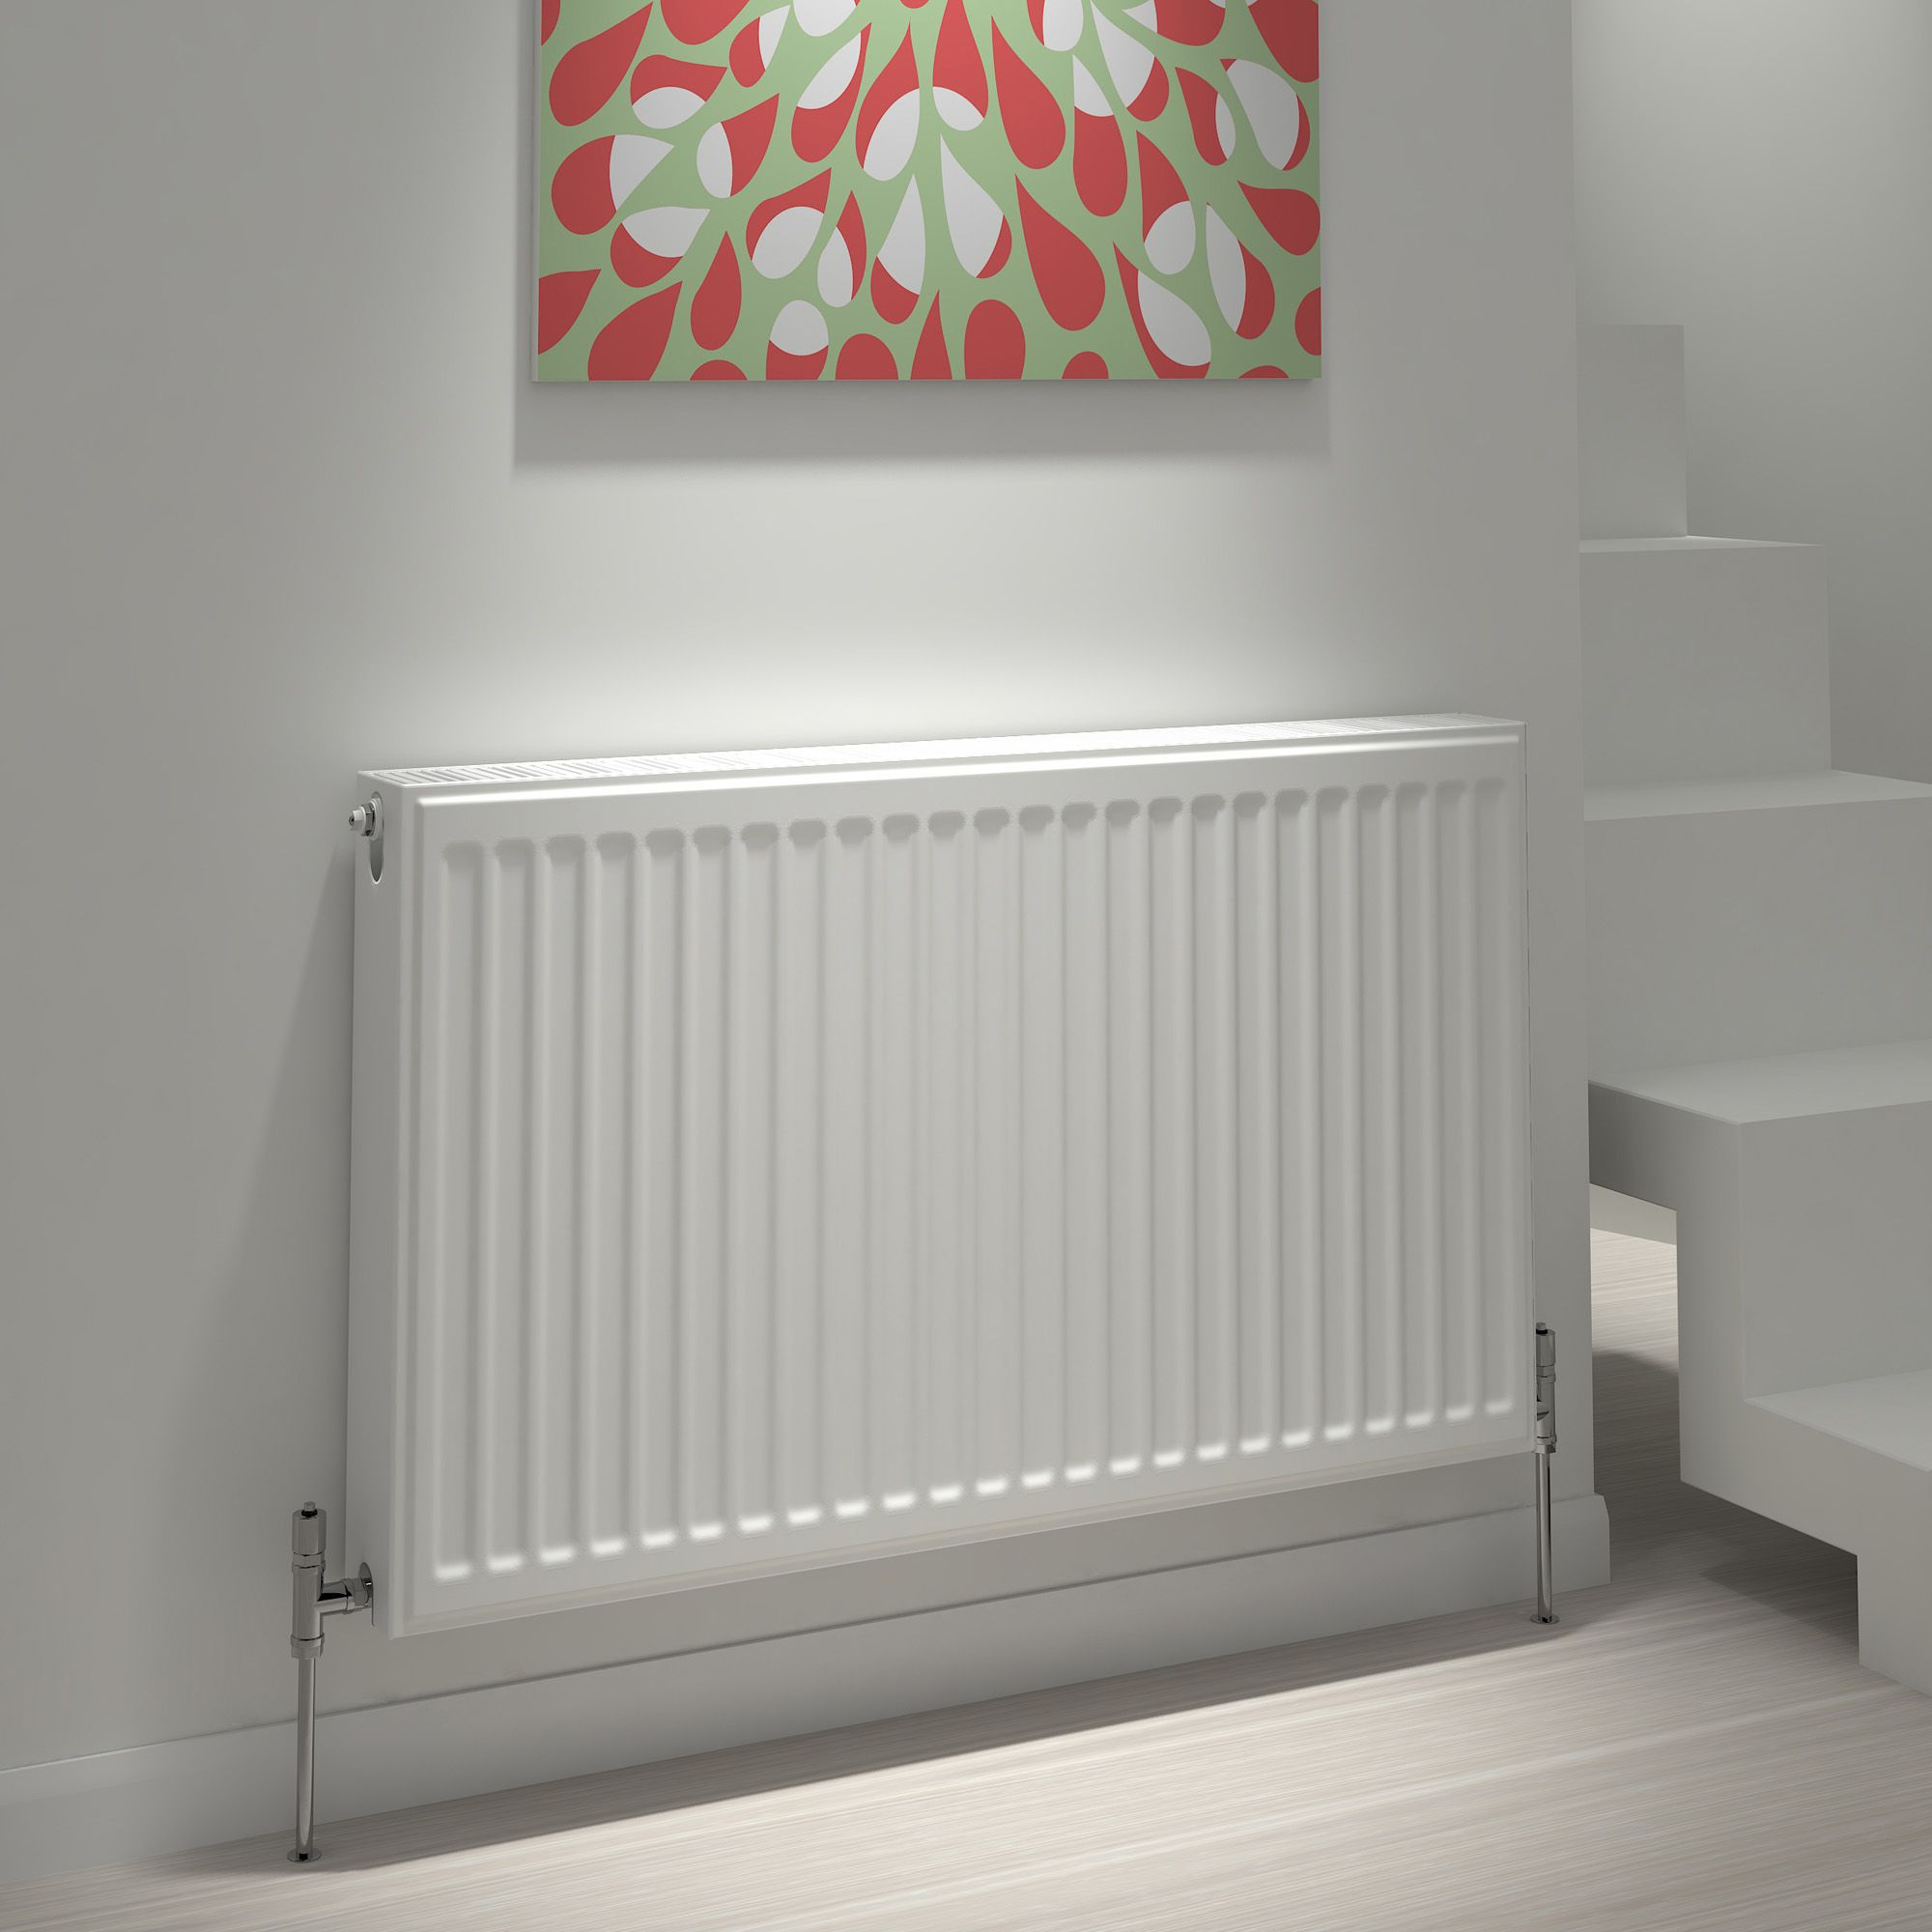 Kudox Type 22 Double Panel Radiator, (H)500mm (W)600mm